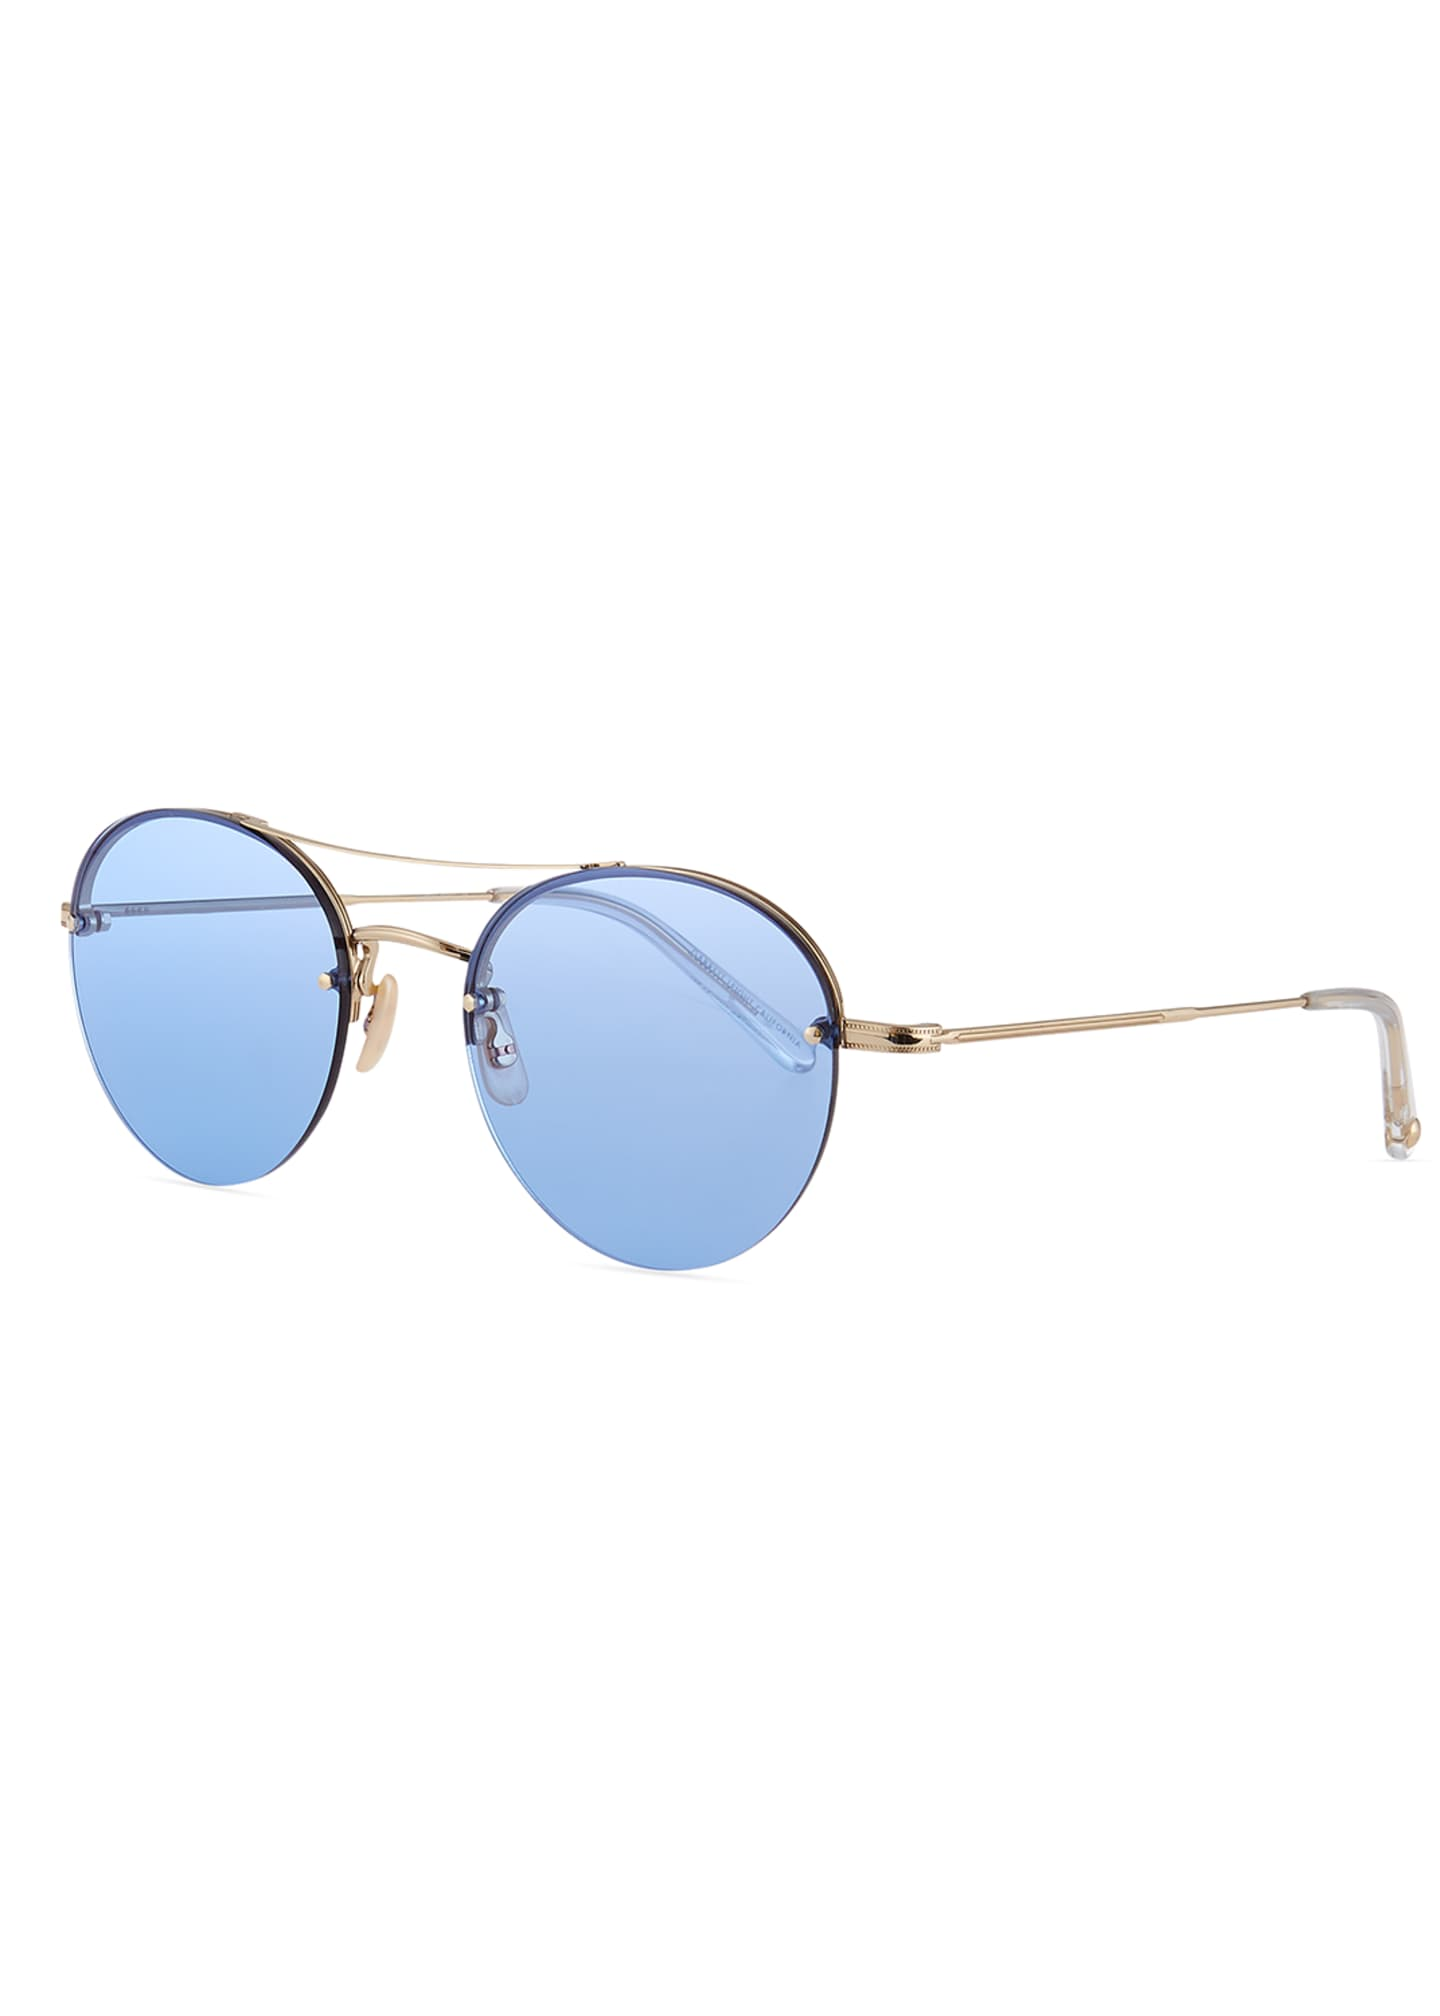 Garrett Leight Beaumont Round Steel Sunglasses